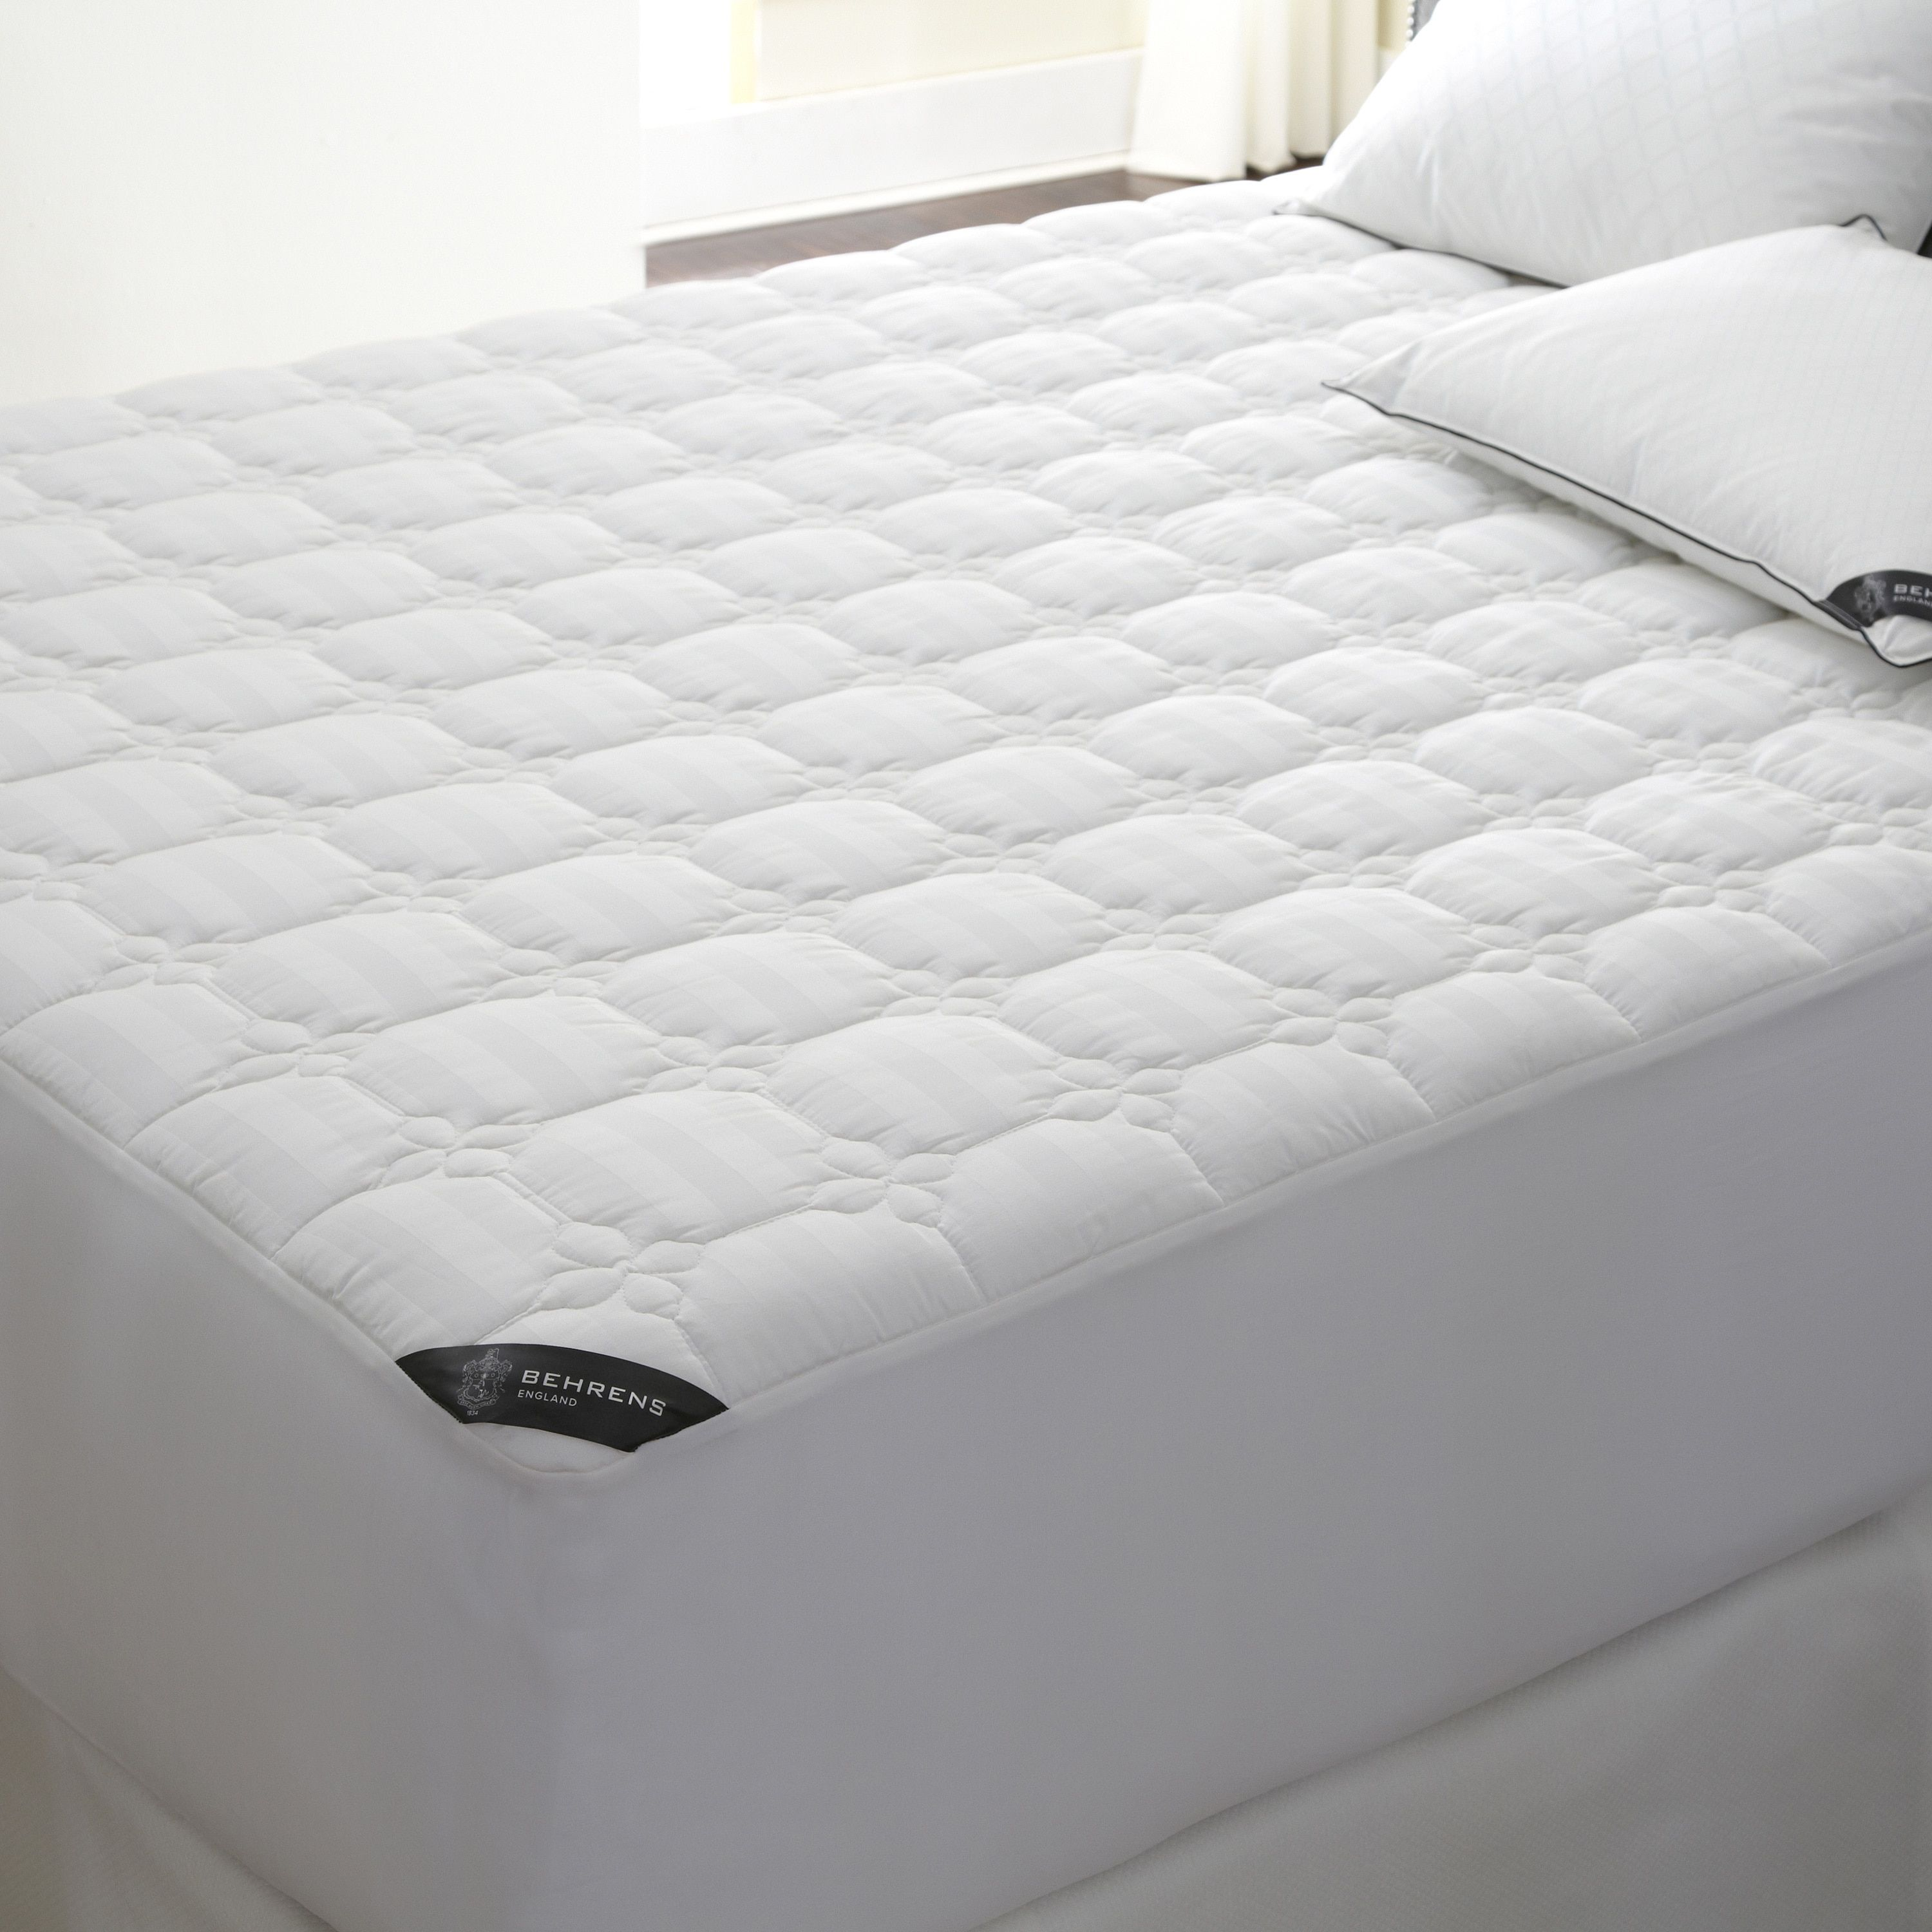 mattress co cover plastic waterproof protector pcok l